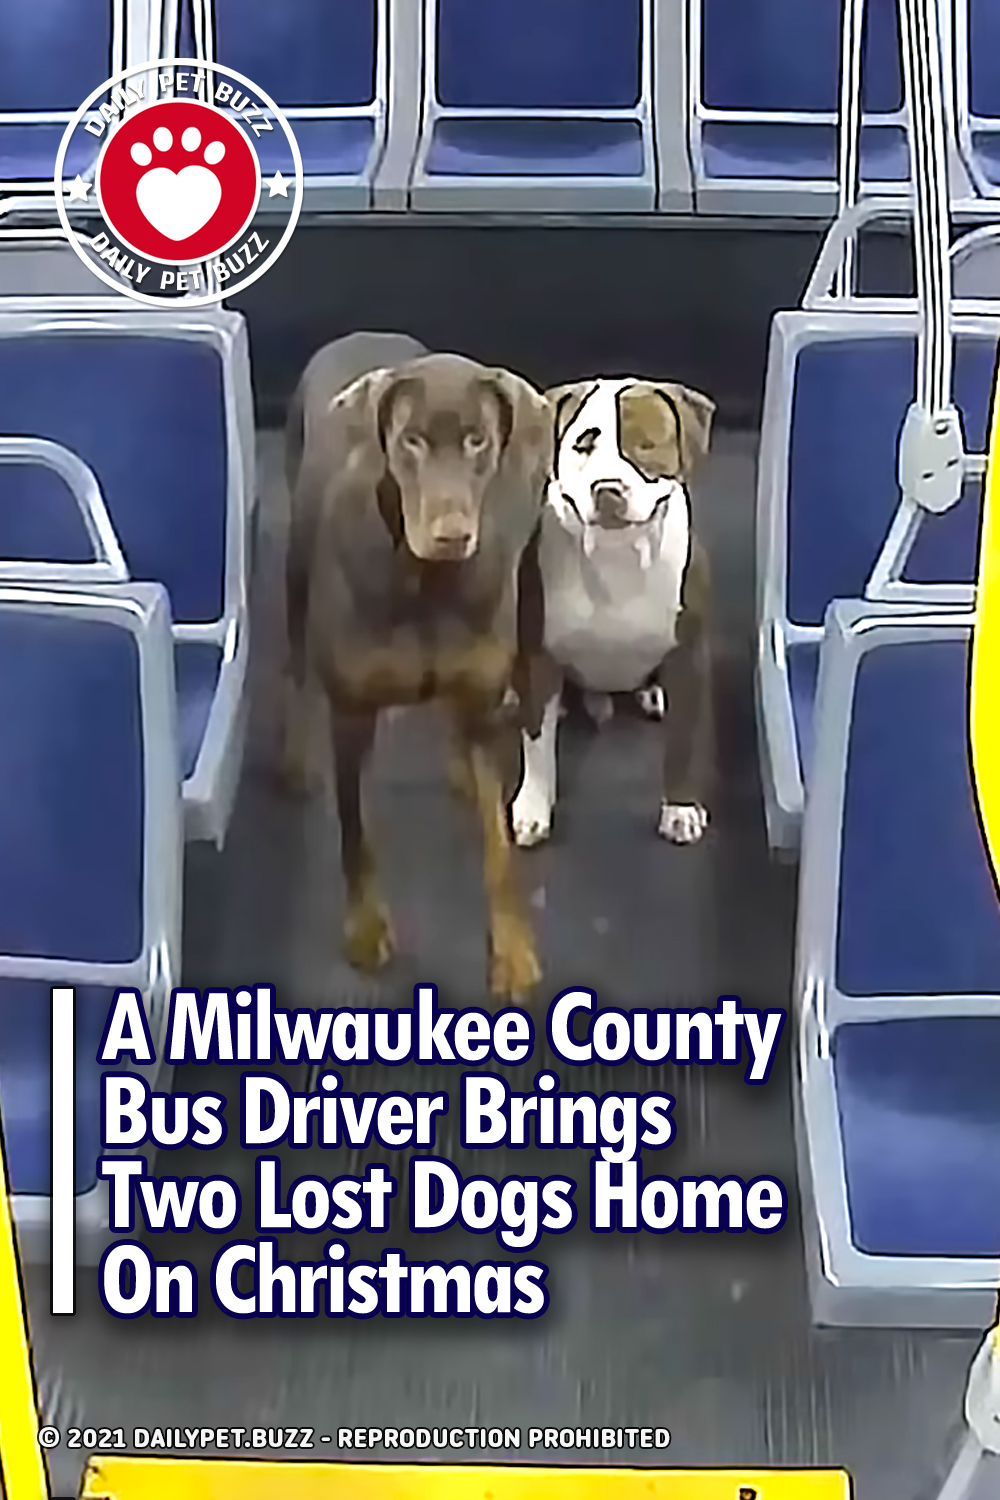 A Milwaukee County Bus Driver Brings Two Lost Dogs Home On Christmas